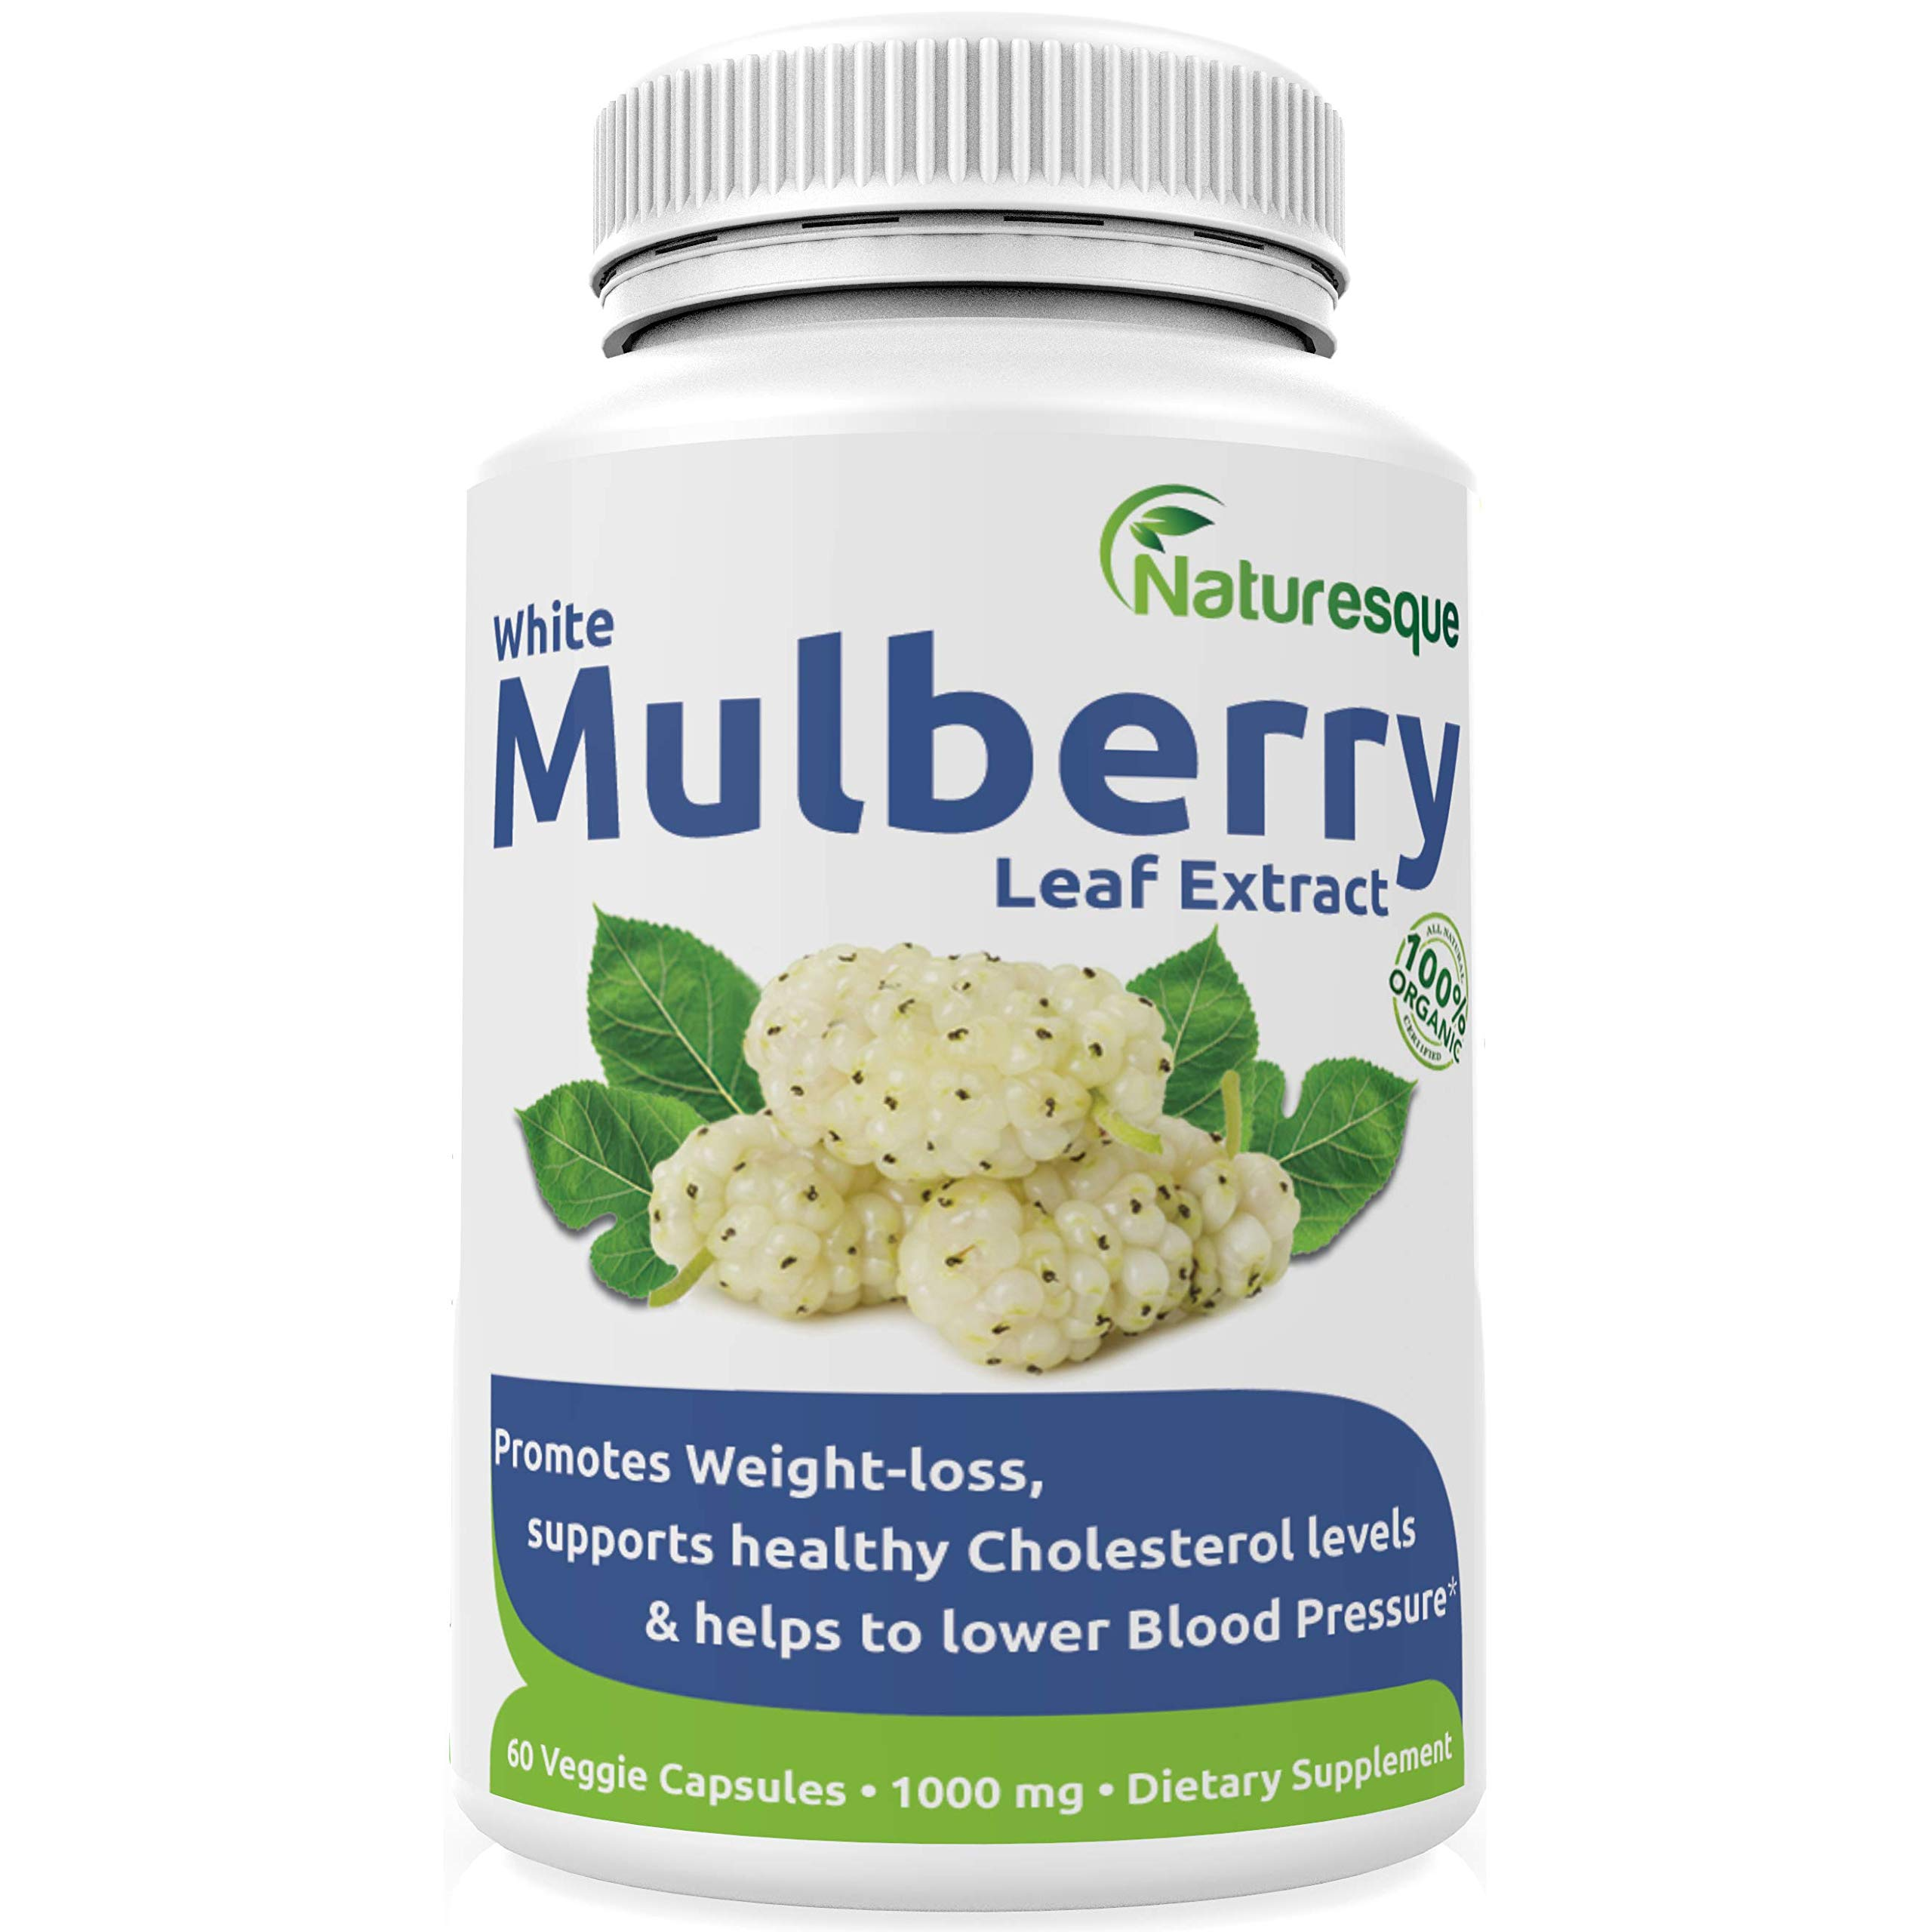 Naturesque White Mulberry Leaf Extract | Controls Appetite, Curbs Sugar & Carb Cravings | Helps